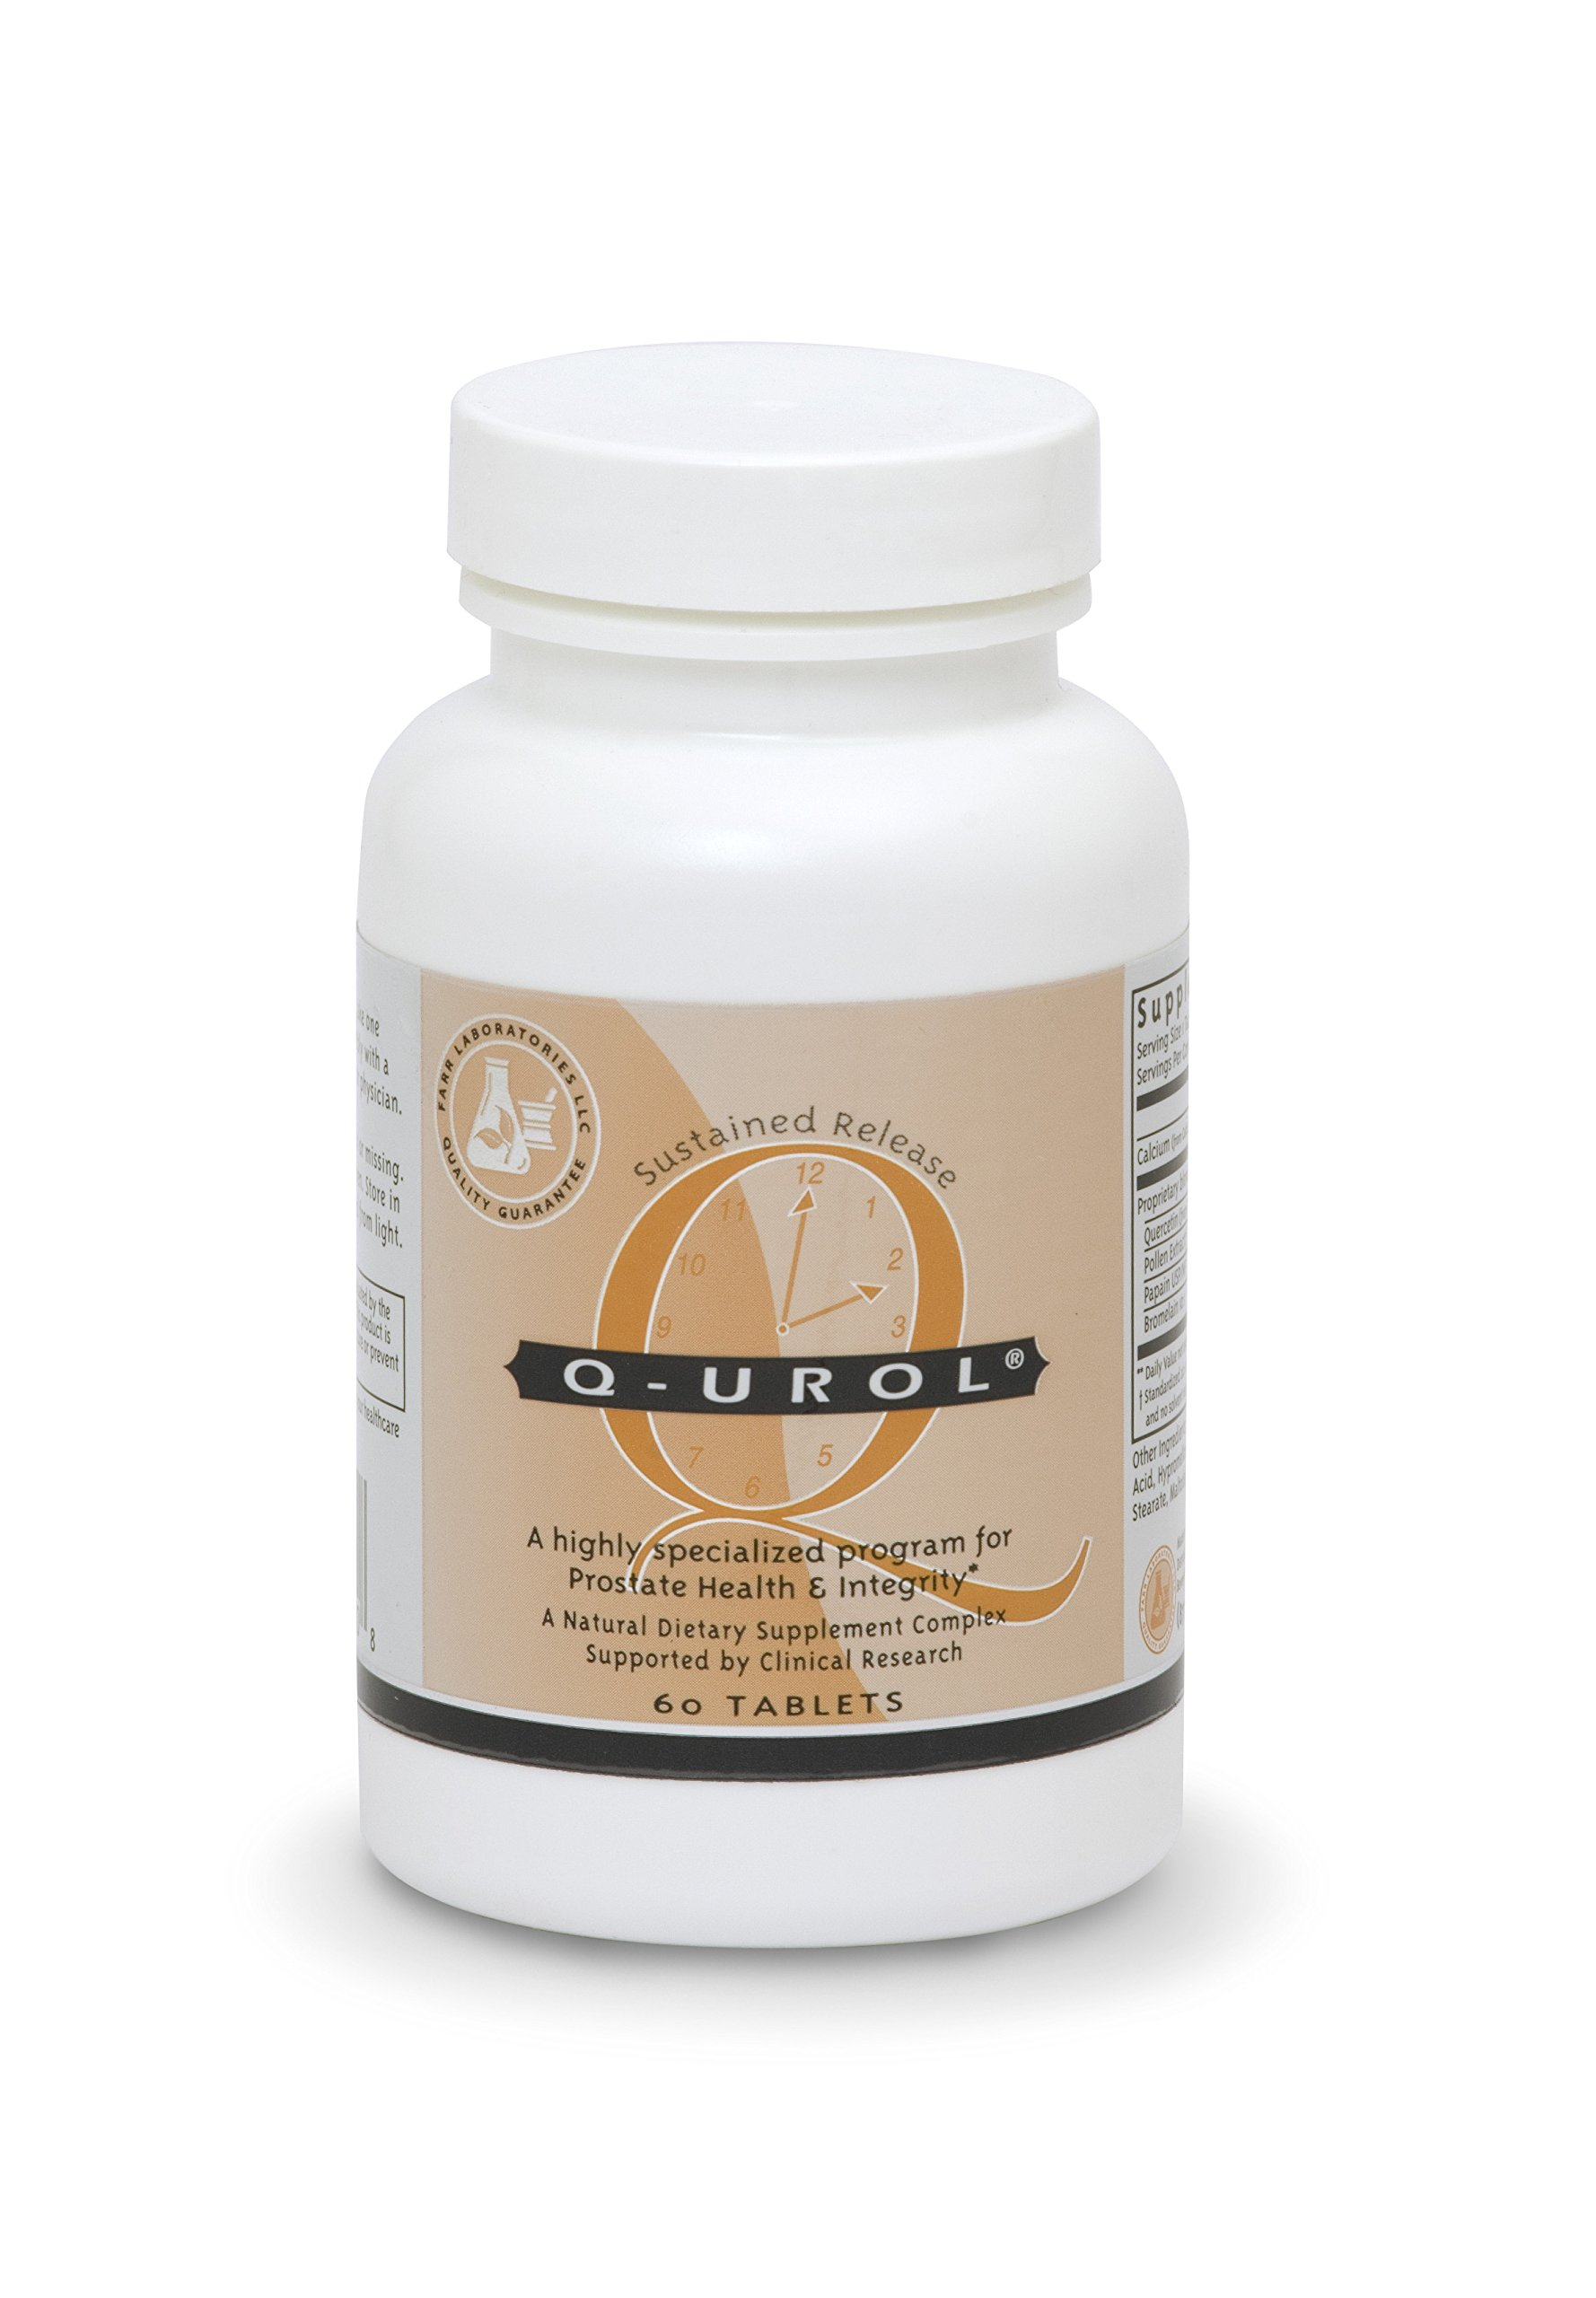 Q-Urol for Prostate Health, Chronic Prostatitis and Chronic Pelvic Pain Syndromes